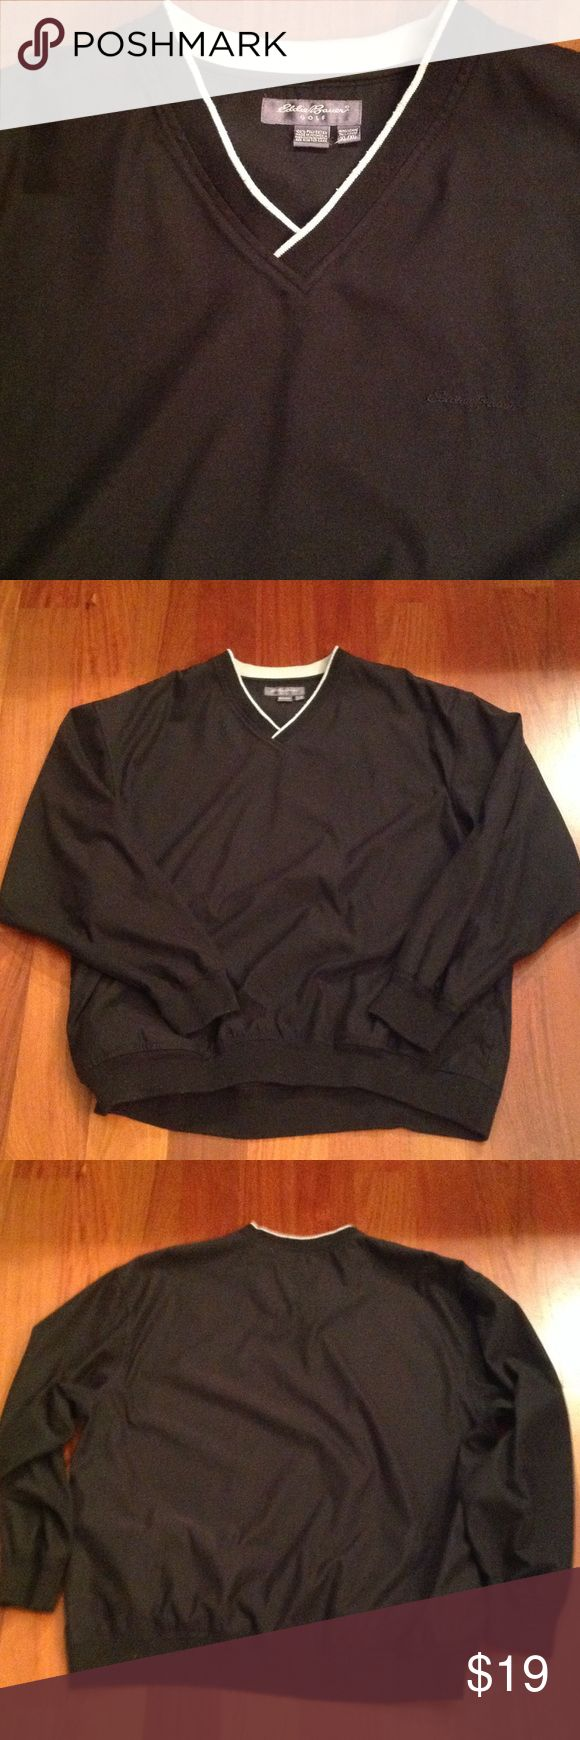 Eddie Bauer golf pull-over Black pull-over style light jacket, with pockets, black. Eddie Bauer Jackets & Coats